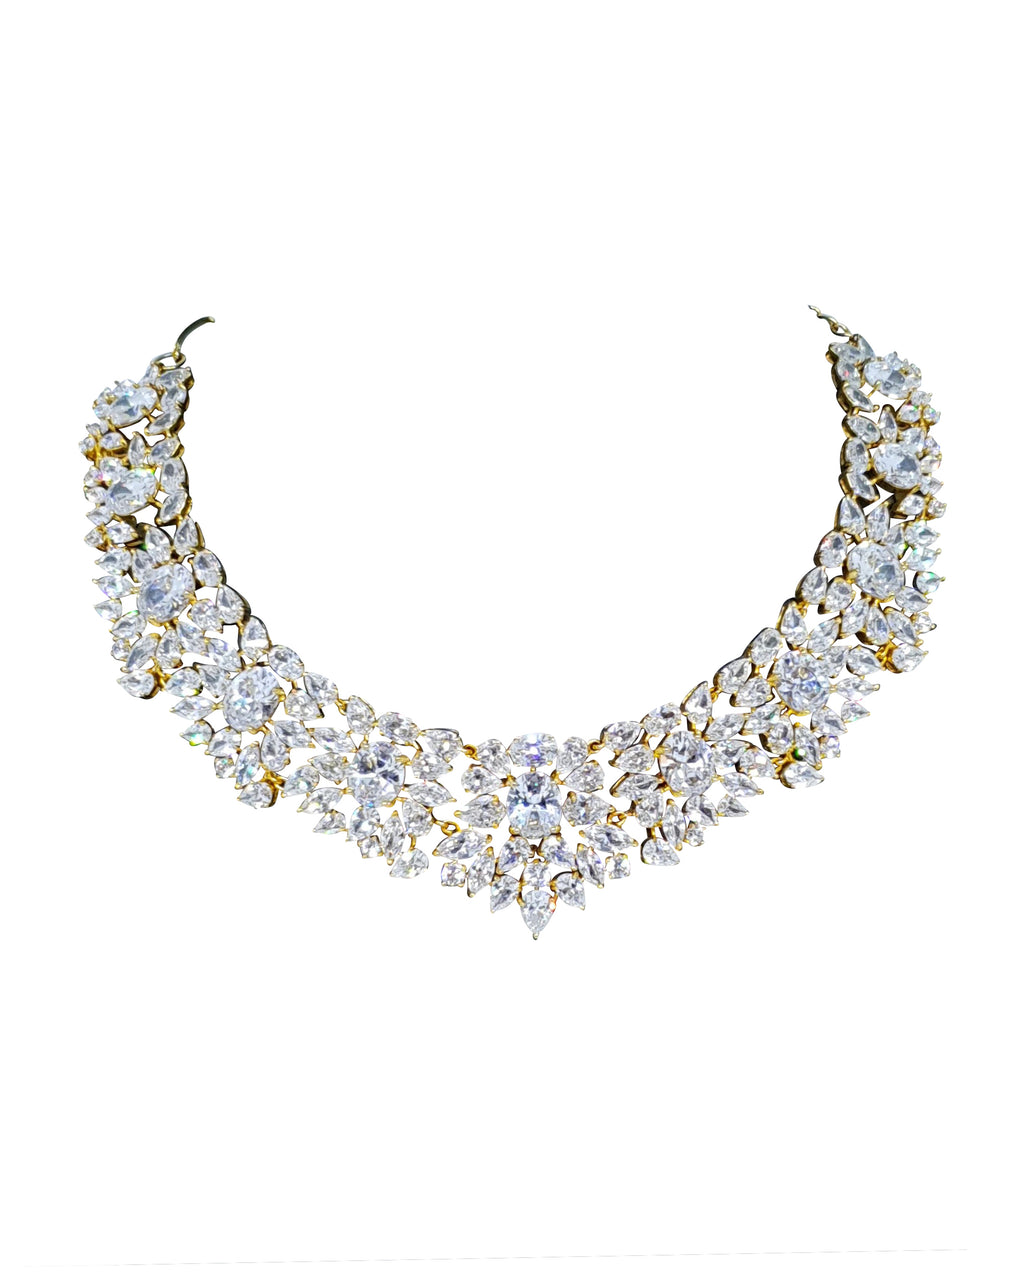 Zircon Choker Necklace